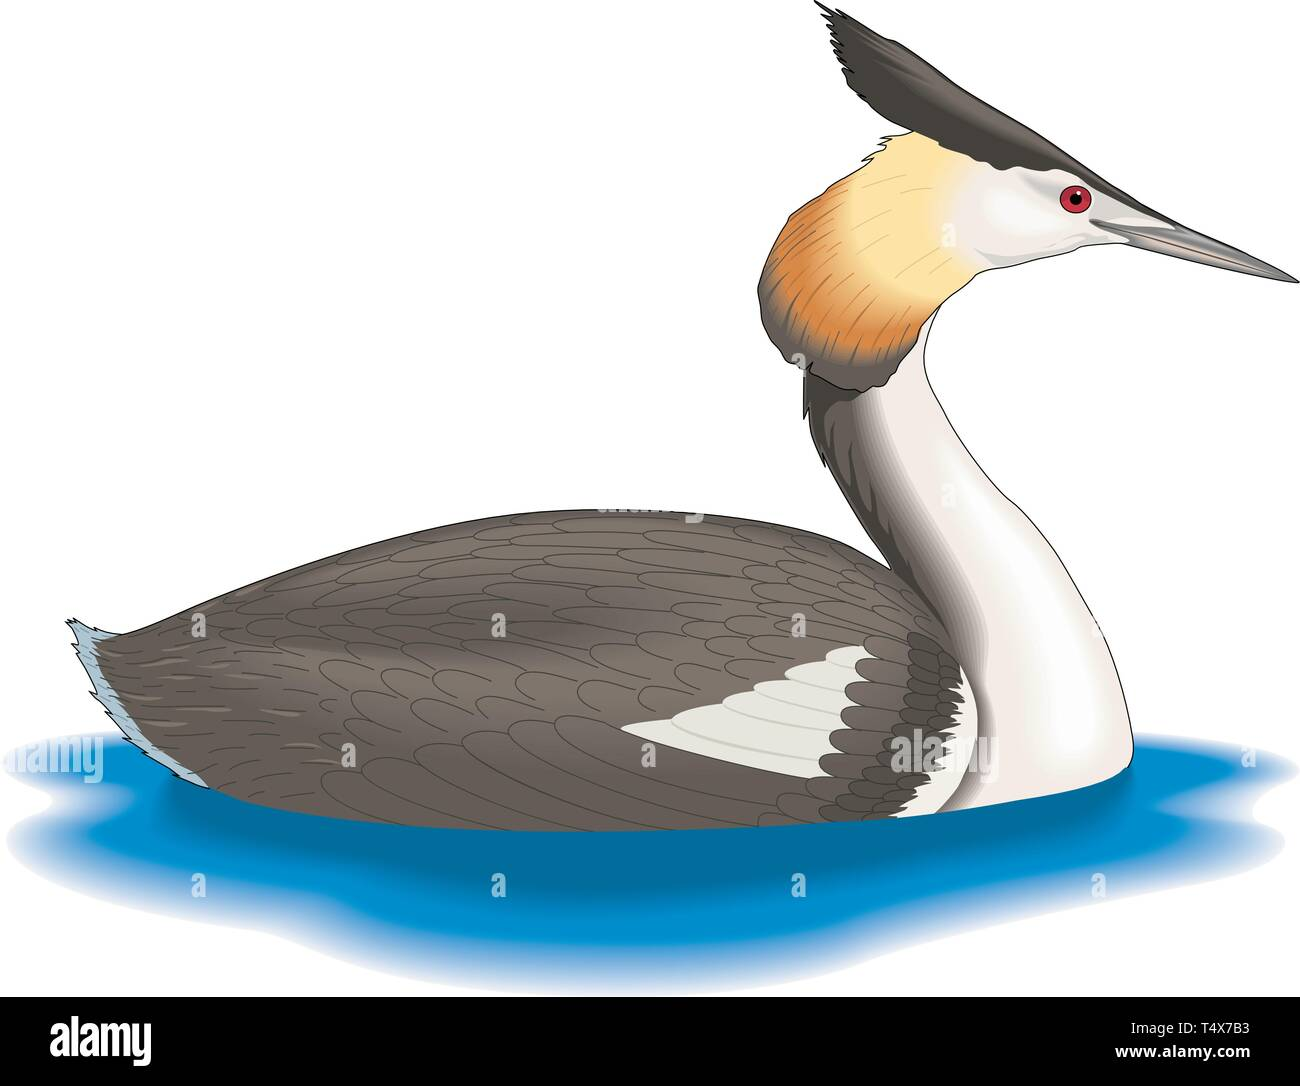 Great Crested Grebe Swimming Vector Illustration - Stock Vector